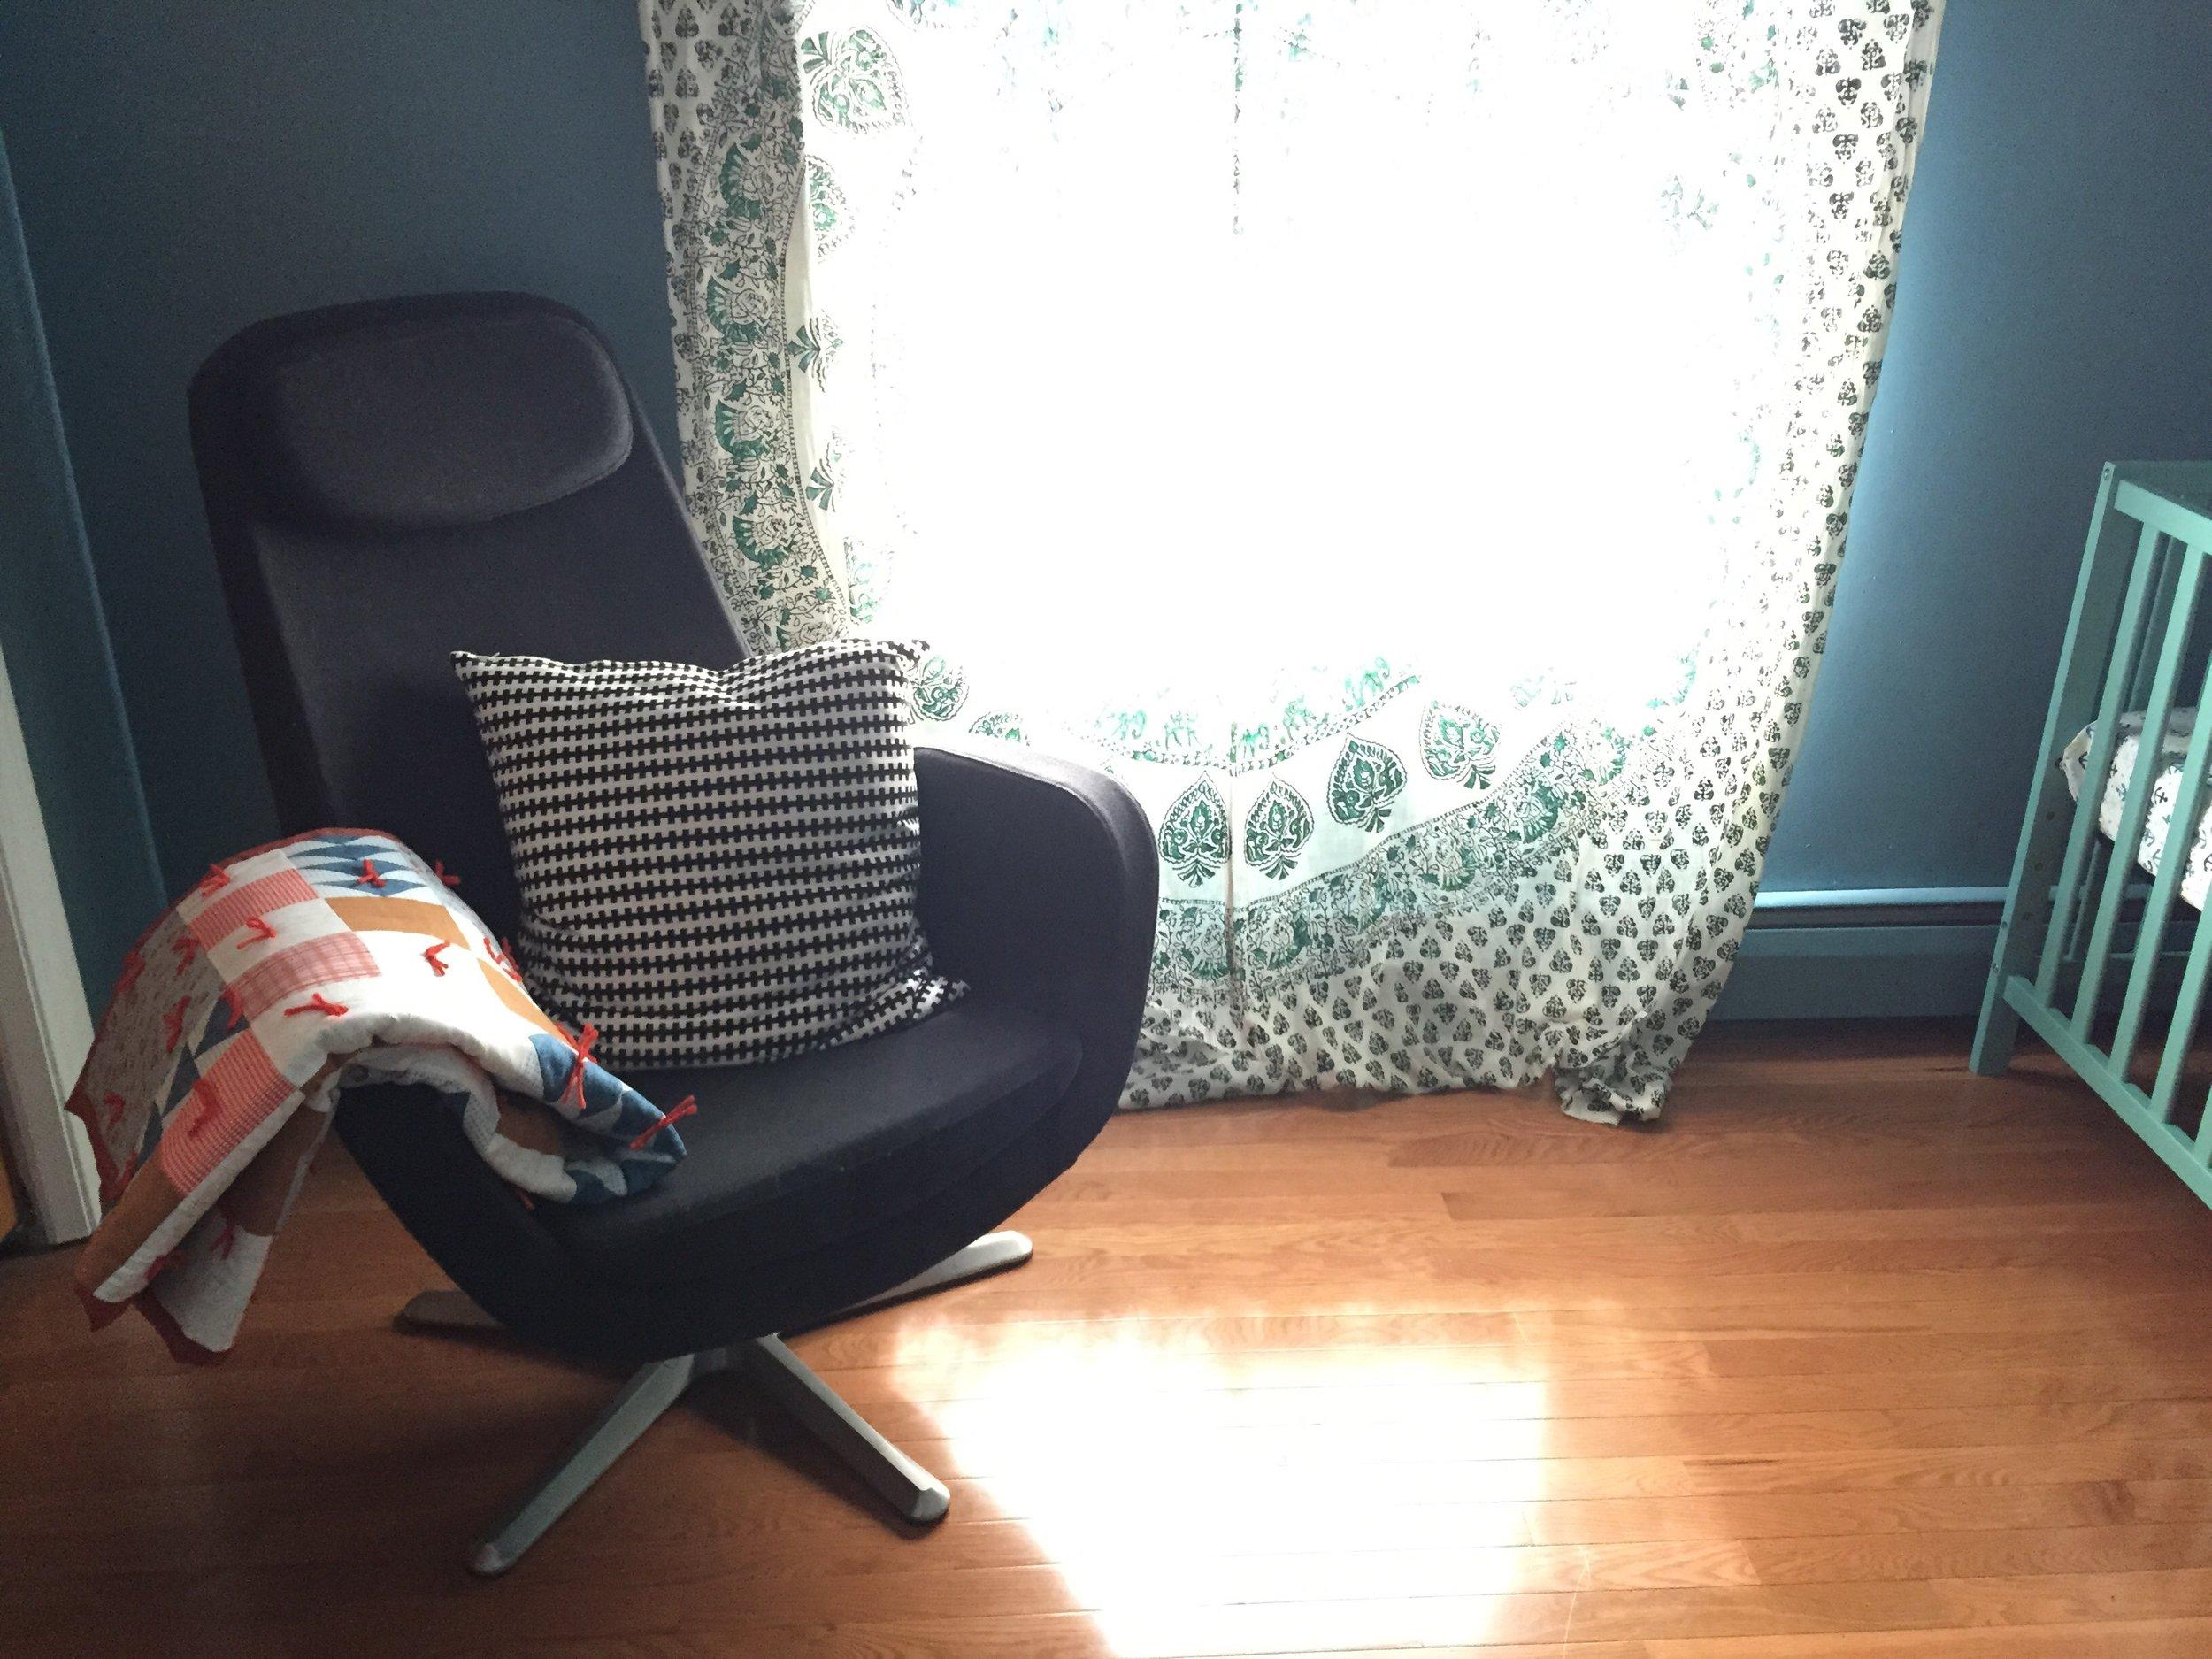 The Babe's Room - The Chair